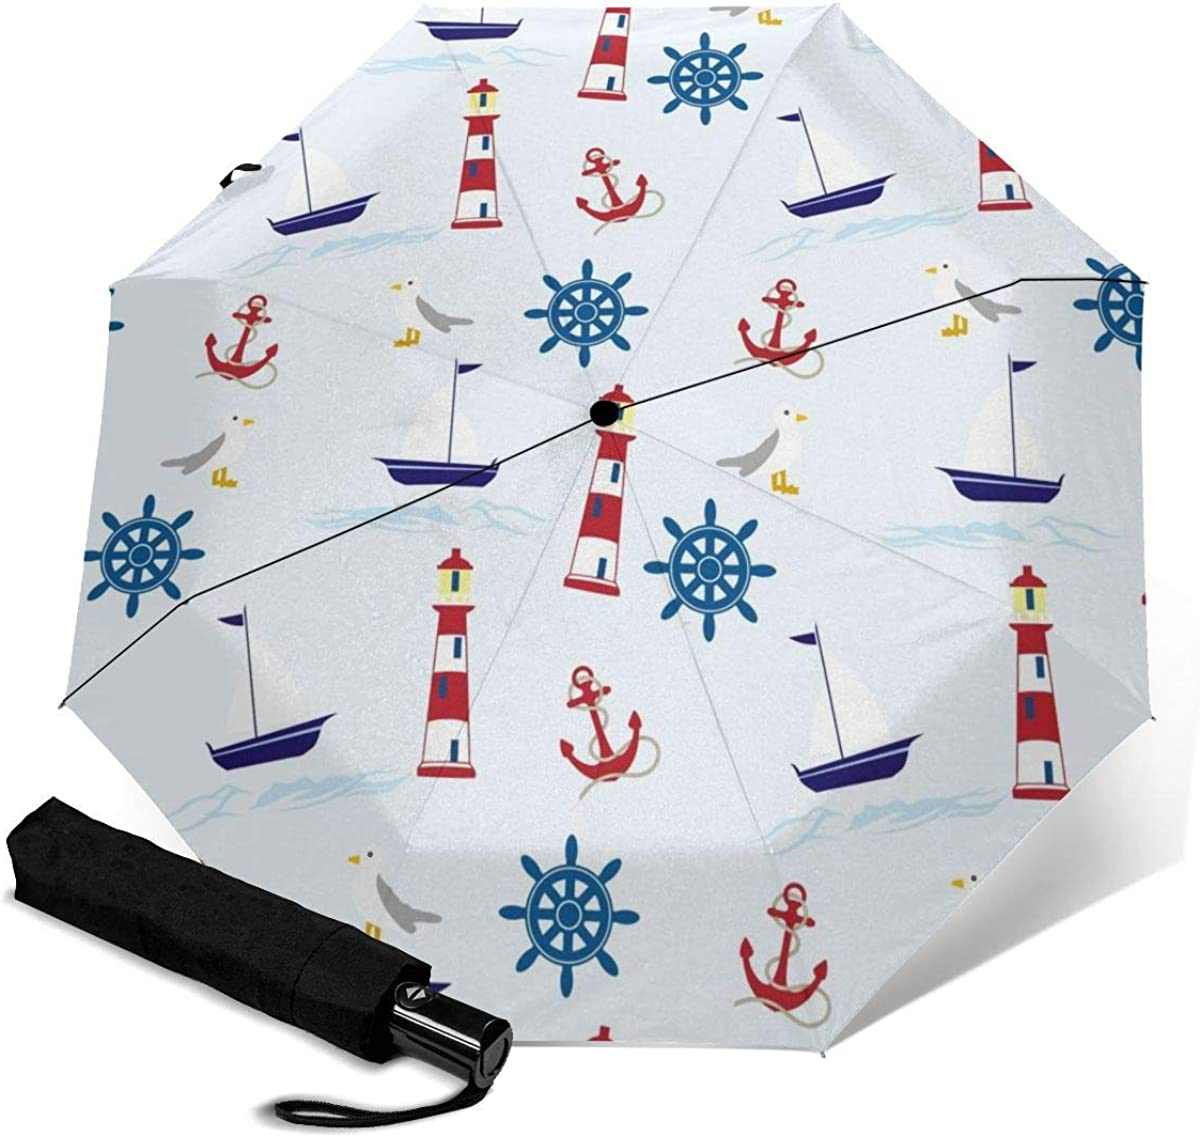 Ship Wheel Lighthouse Sail Boat Anchor Compact Travel Umbrella Windproof Reinforced Canopy 8 Ribs Umbrella Auto Open And Close Button Personalized